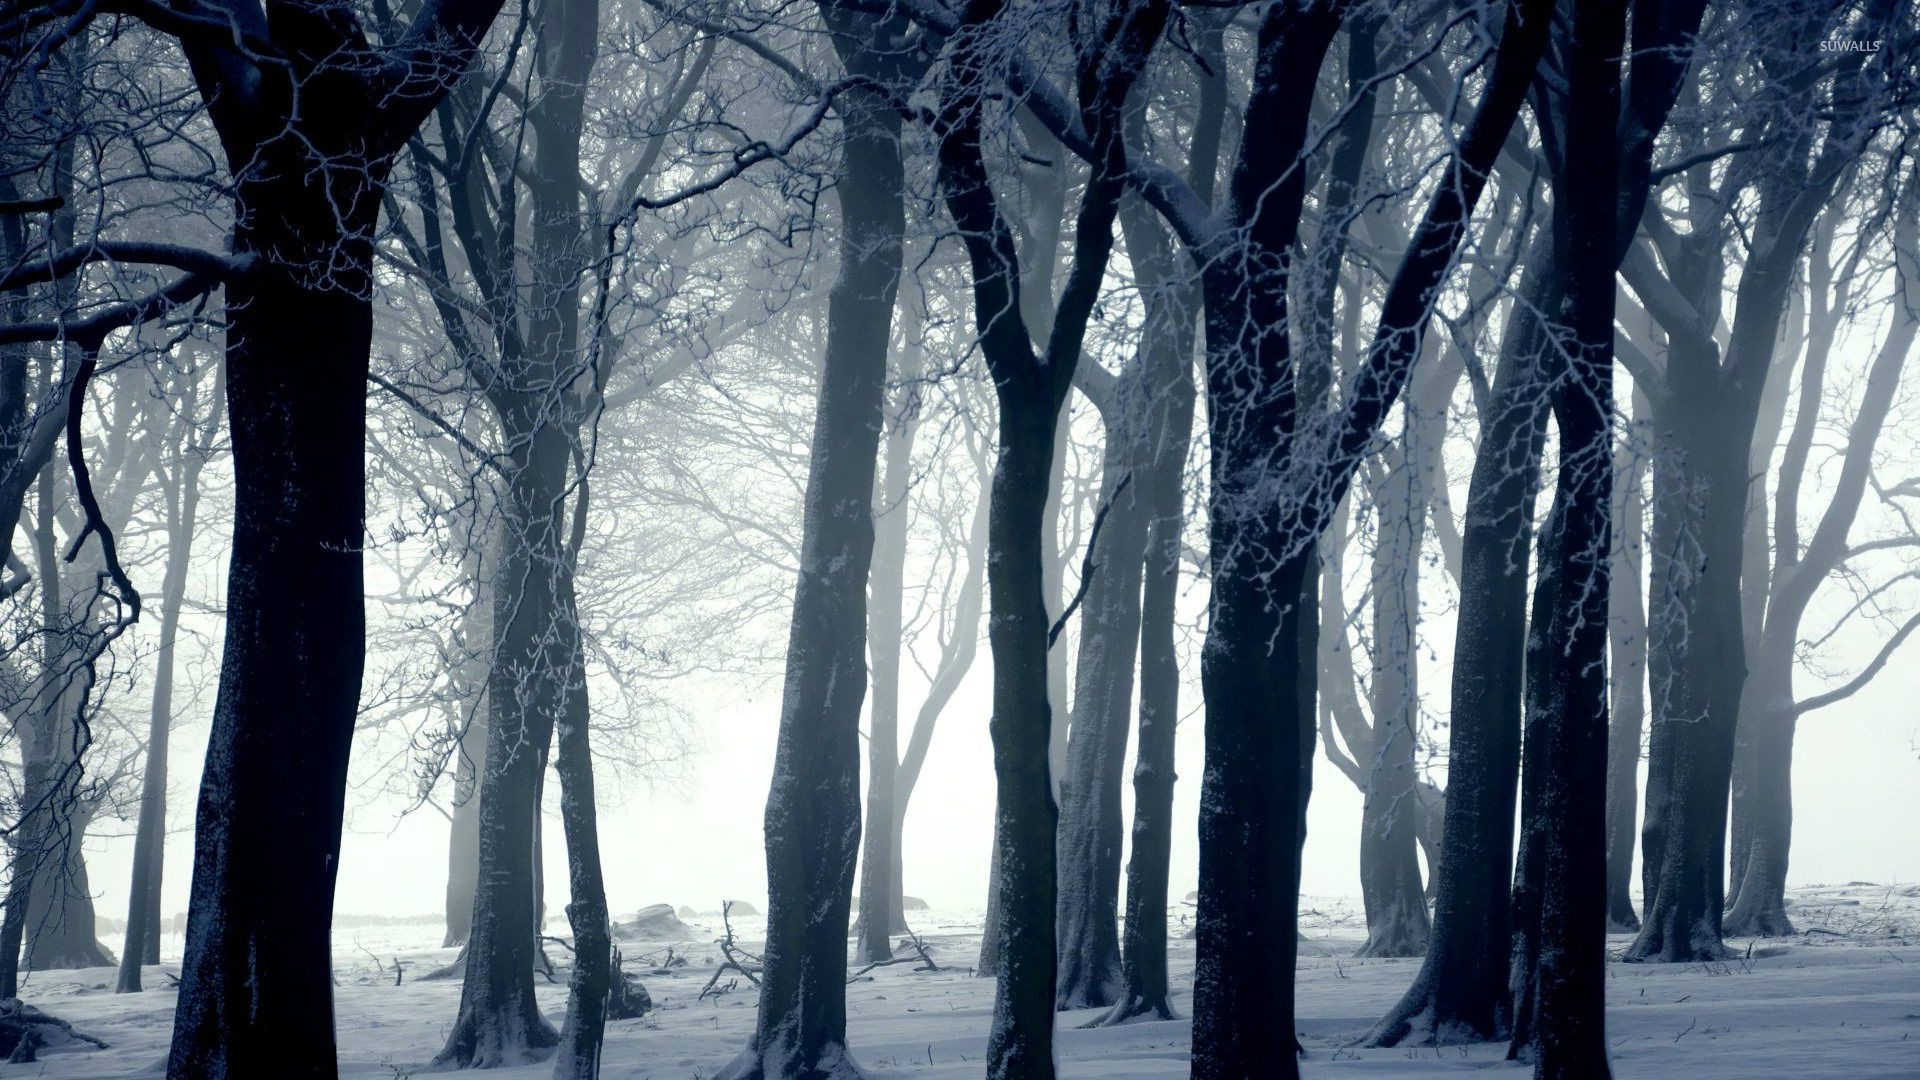 Snowy Dark Forest Wallpaper Wallpapertag